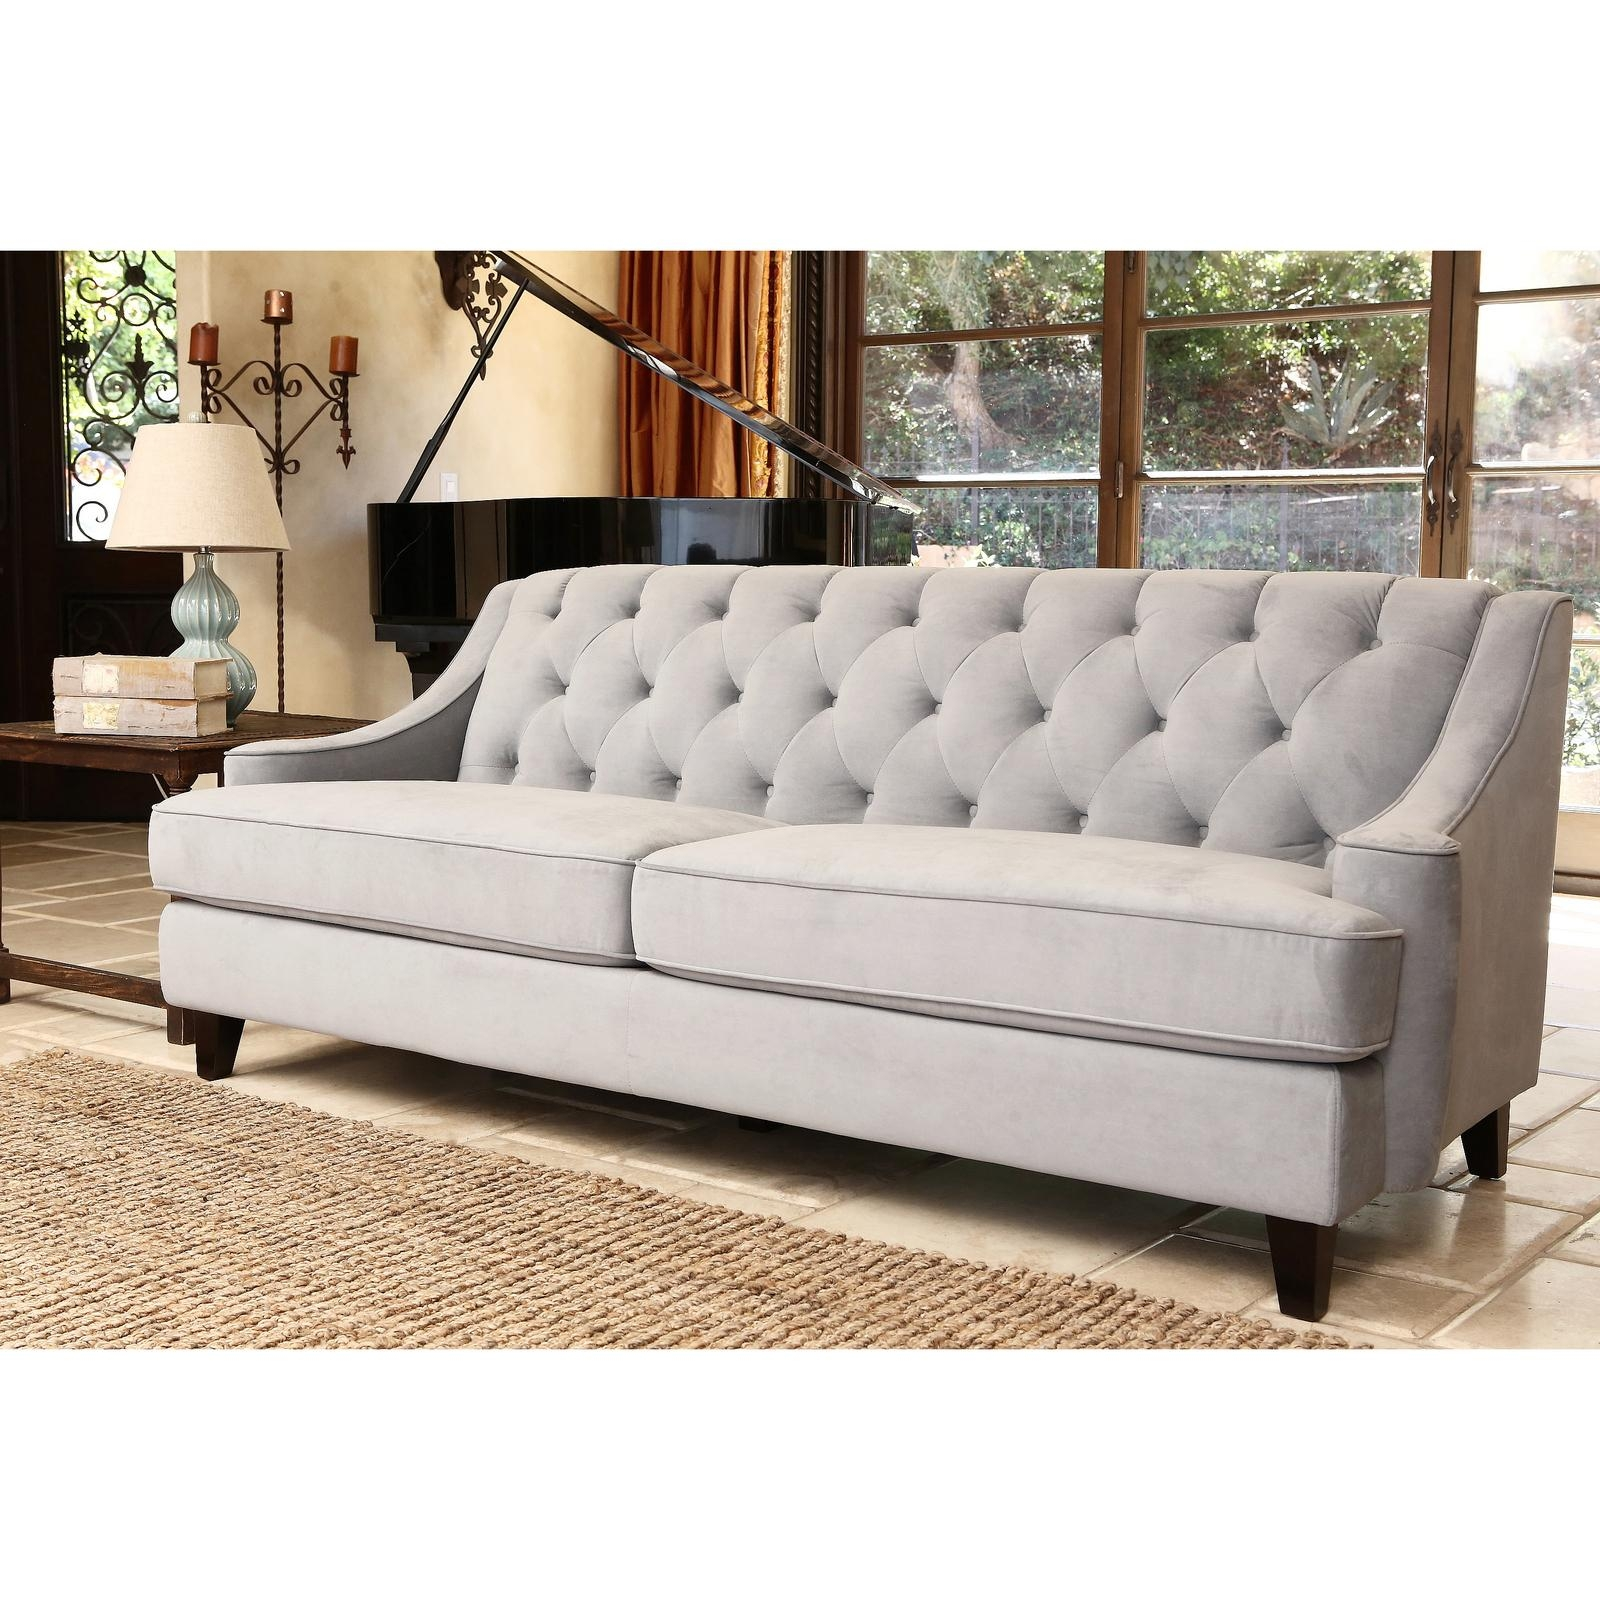 Sofas : Wonderful Modern Sectional Couches Cheap Sectionals L Regarding Cheap Tufted Sofas (View 20 of 23)